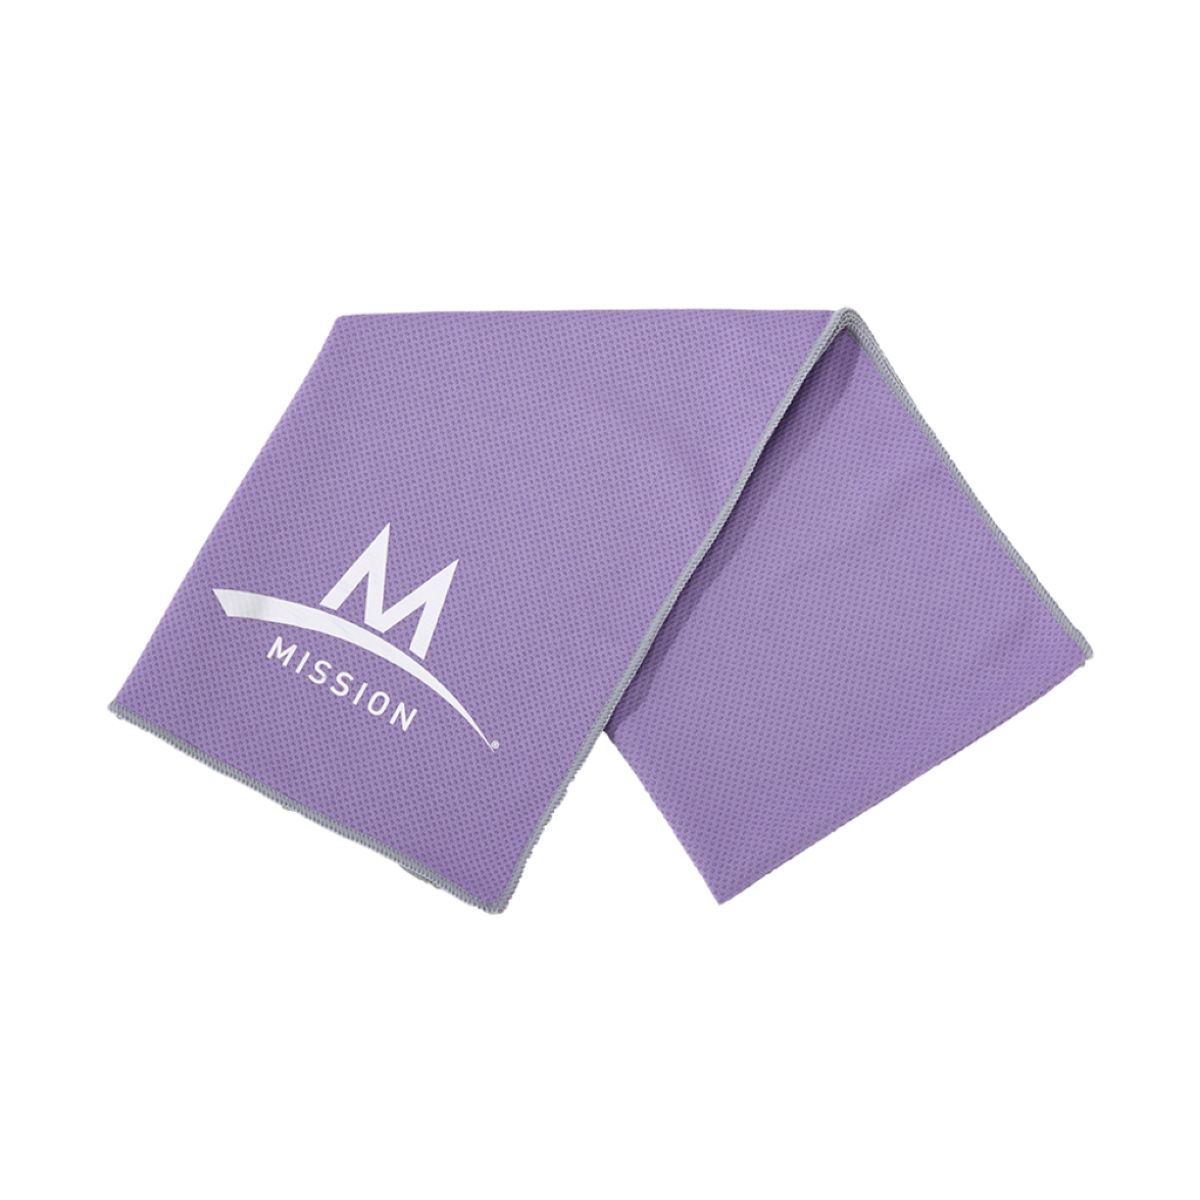 Arena Mission Cooling Towel (Yoga Techknit) - Toallas